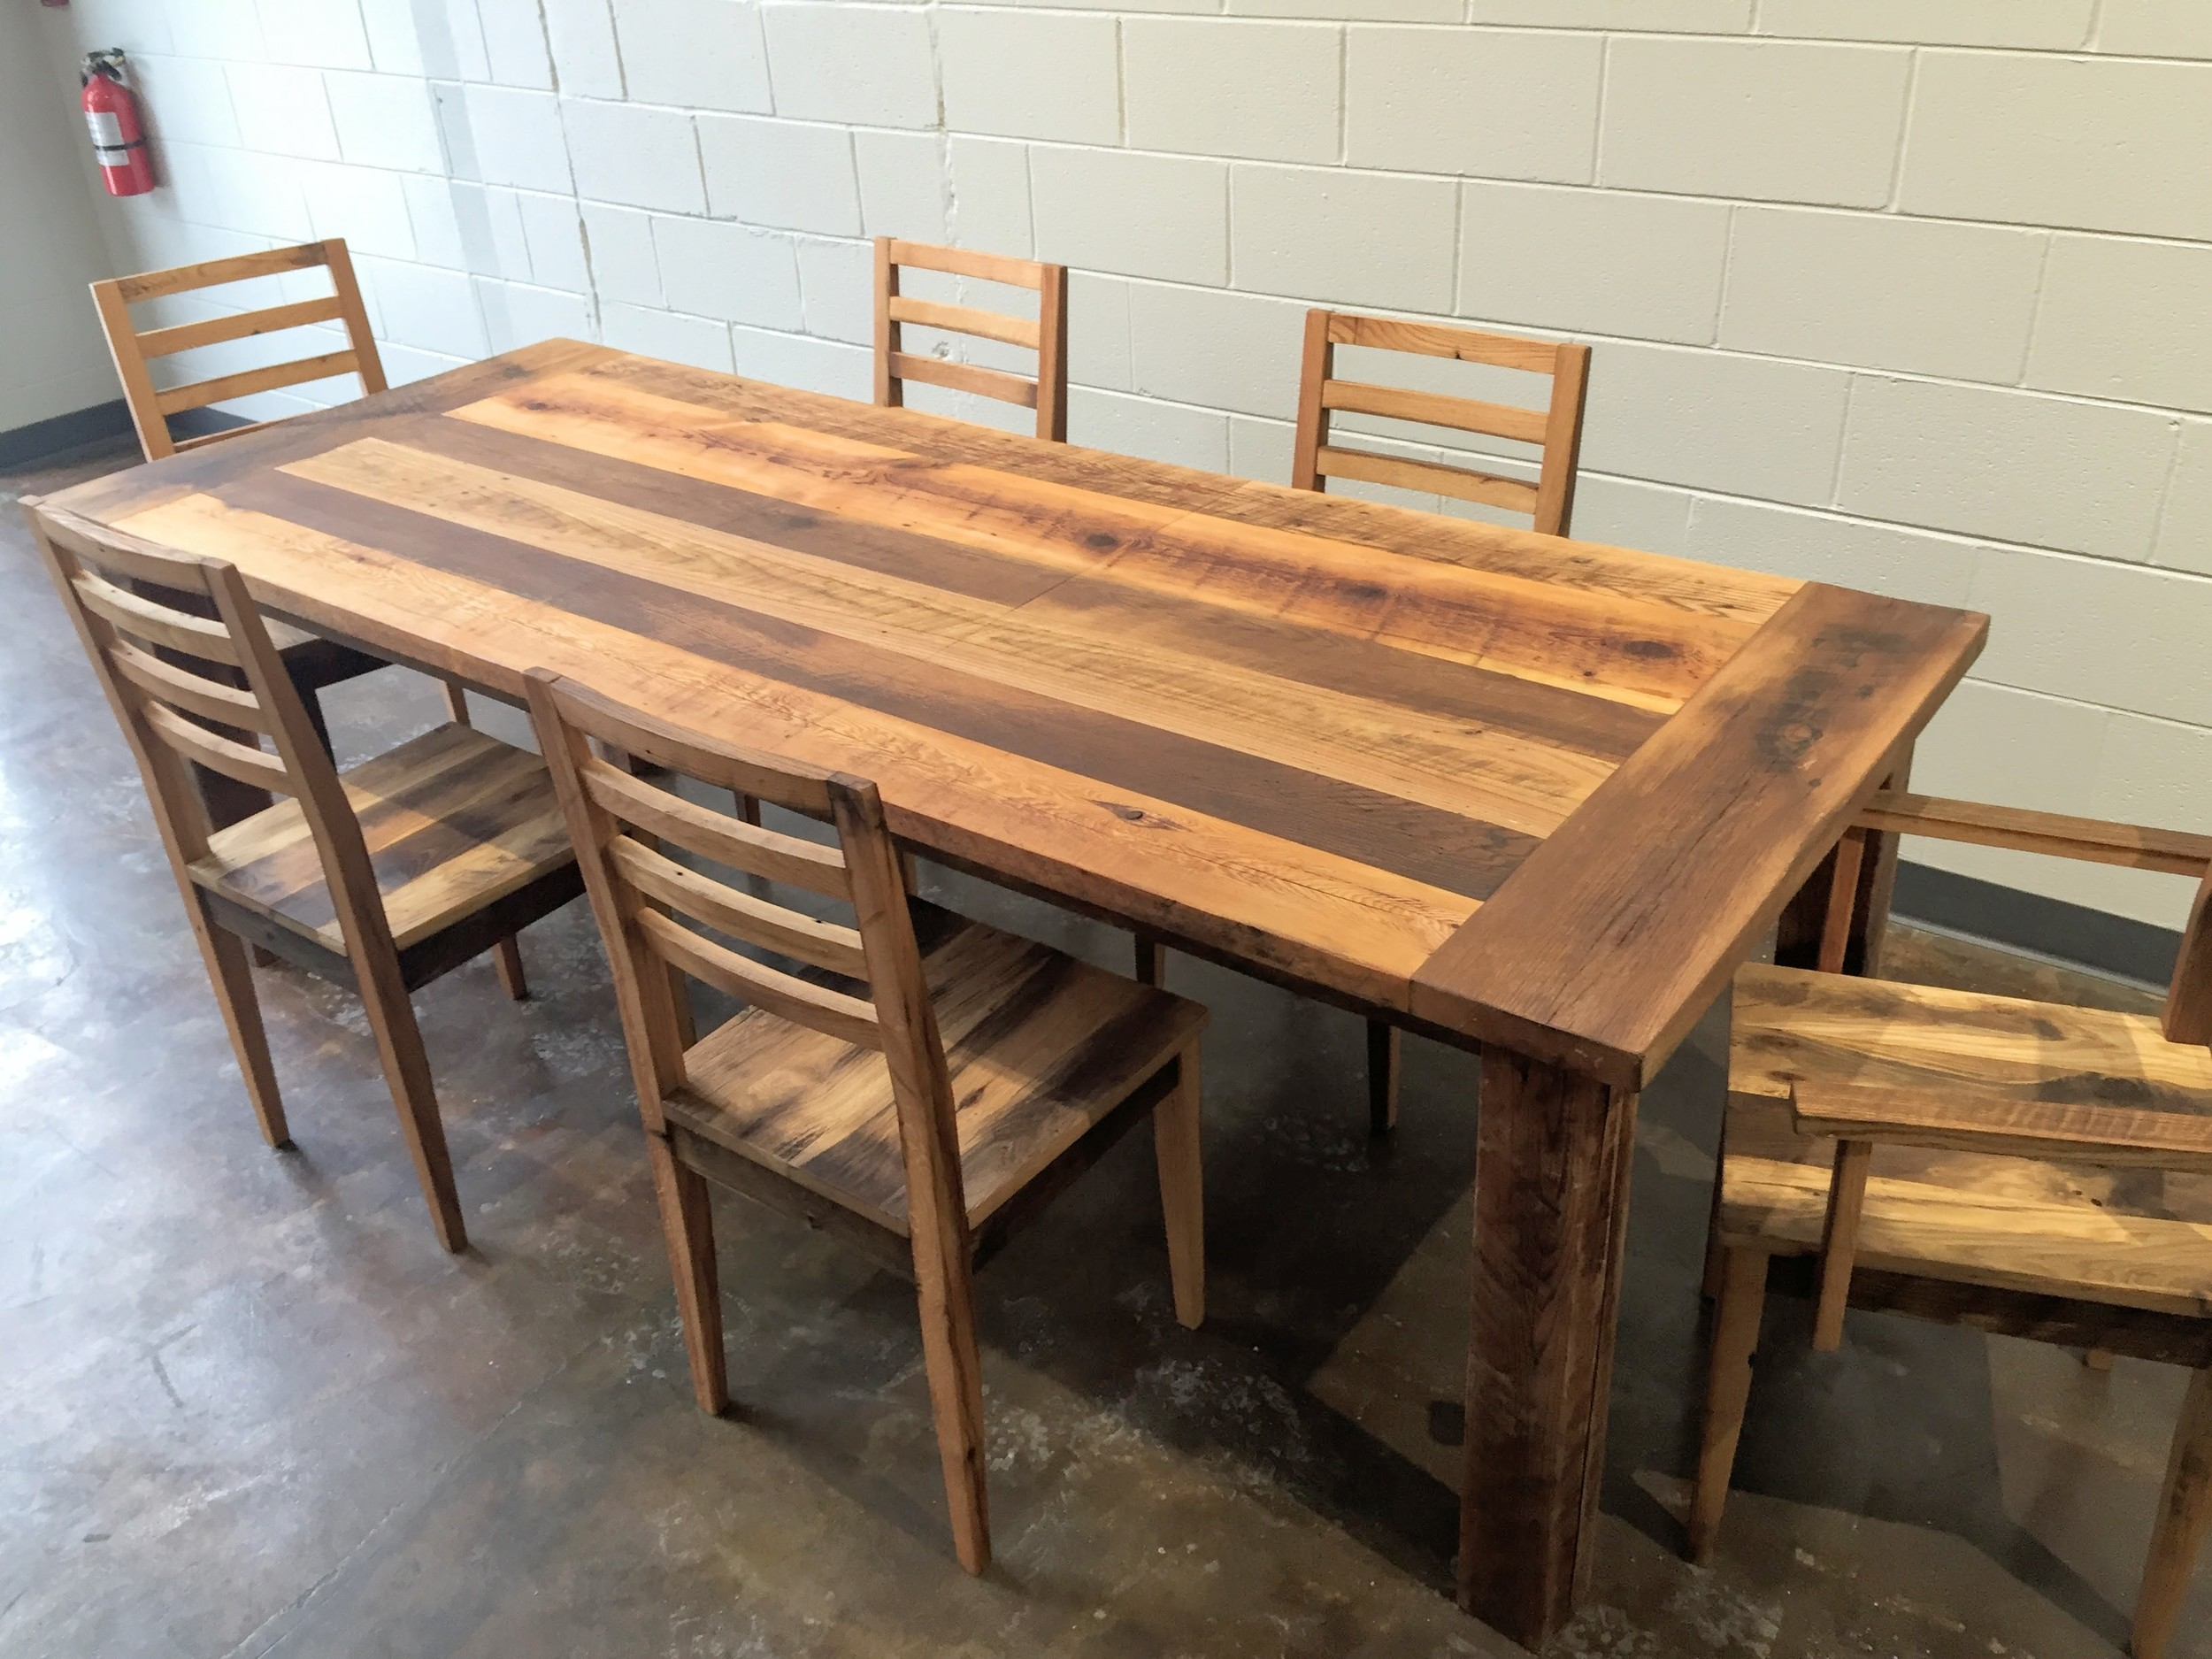 Picture of: Reclaimed Wood Tables Barn Wood Tables What We Make